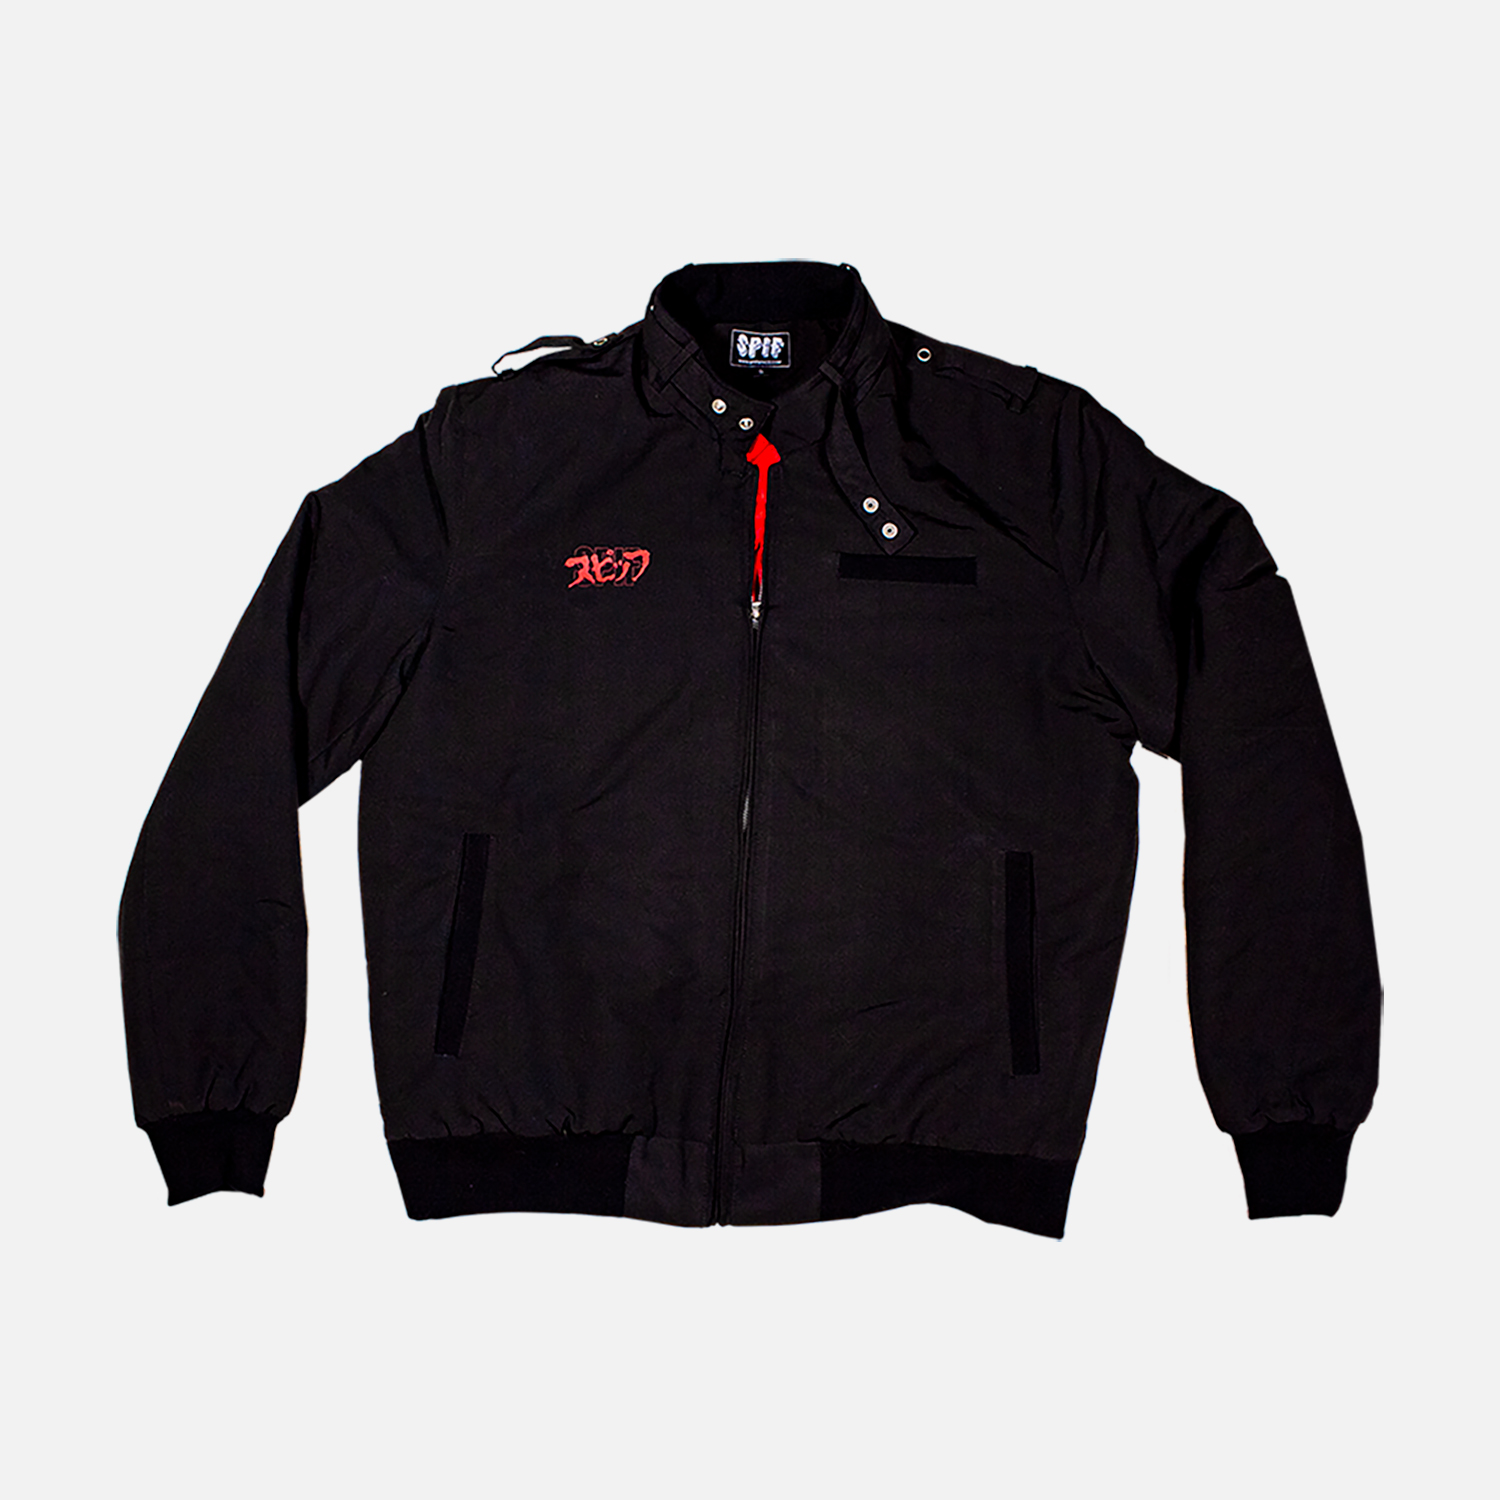 SLEEPING GOD RACER JACKET